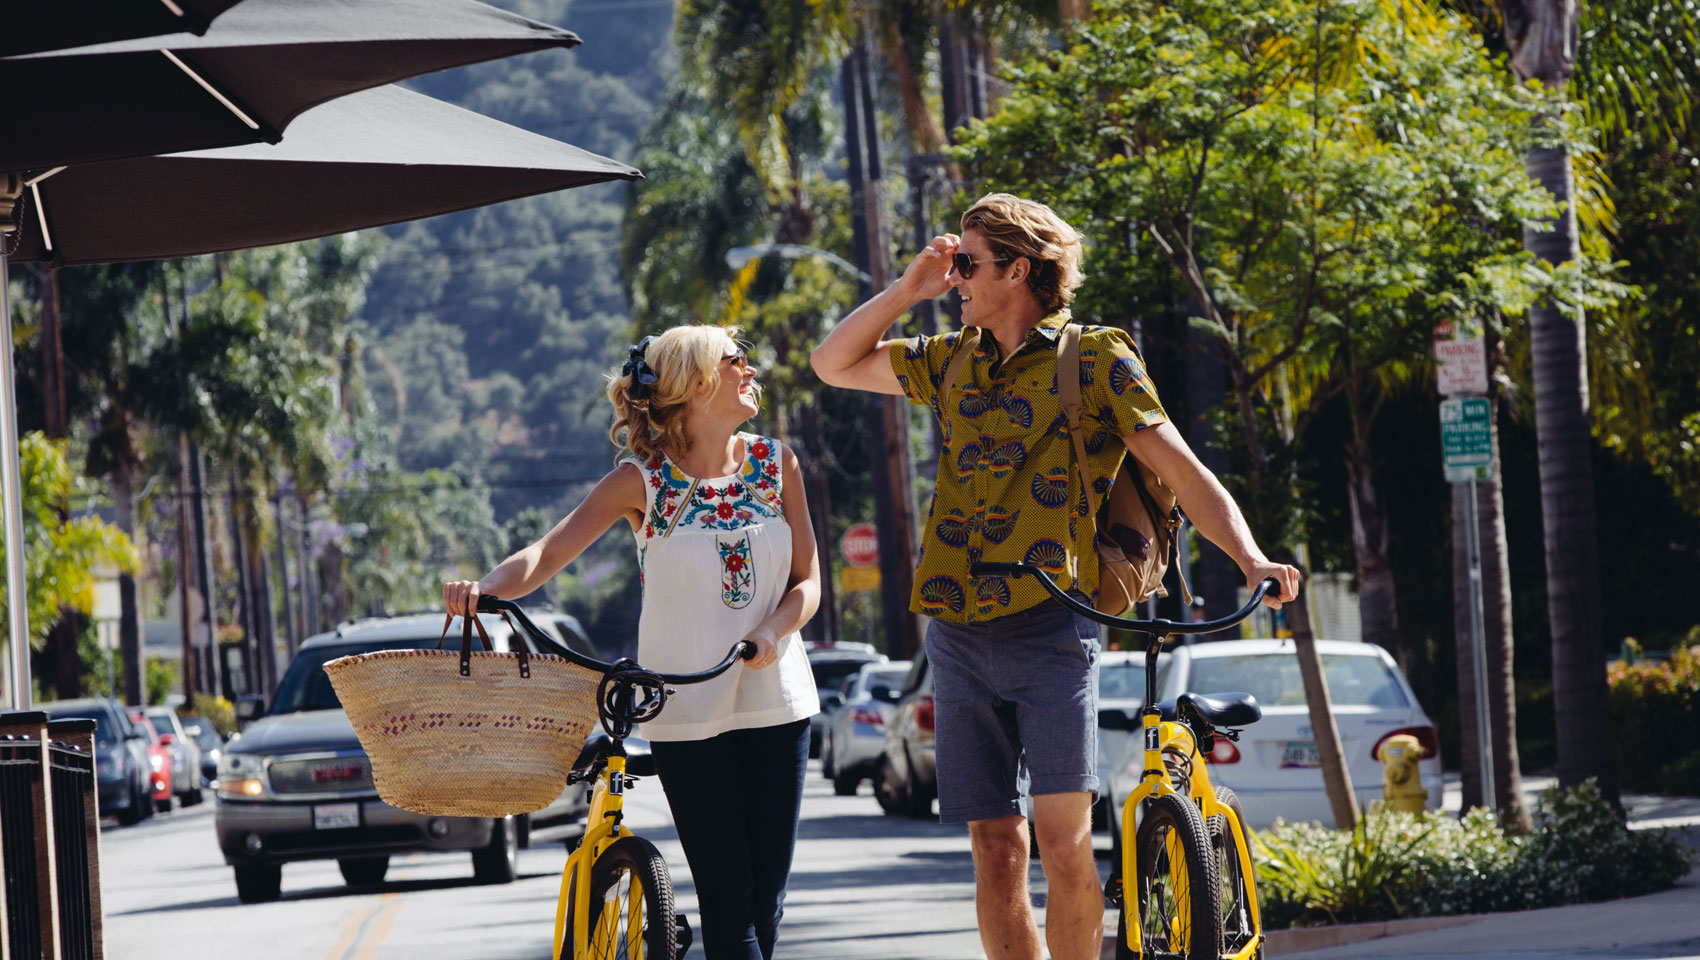 Guests with bicycles in downtown santa barbara